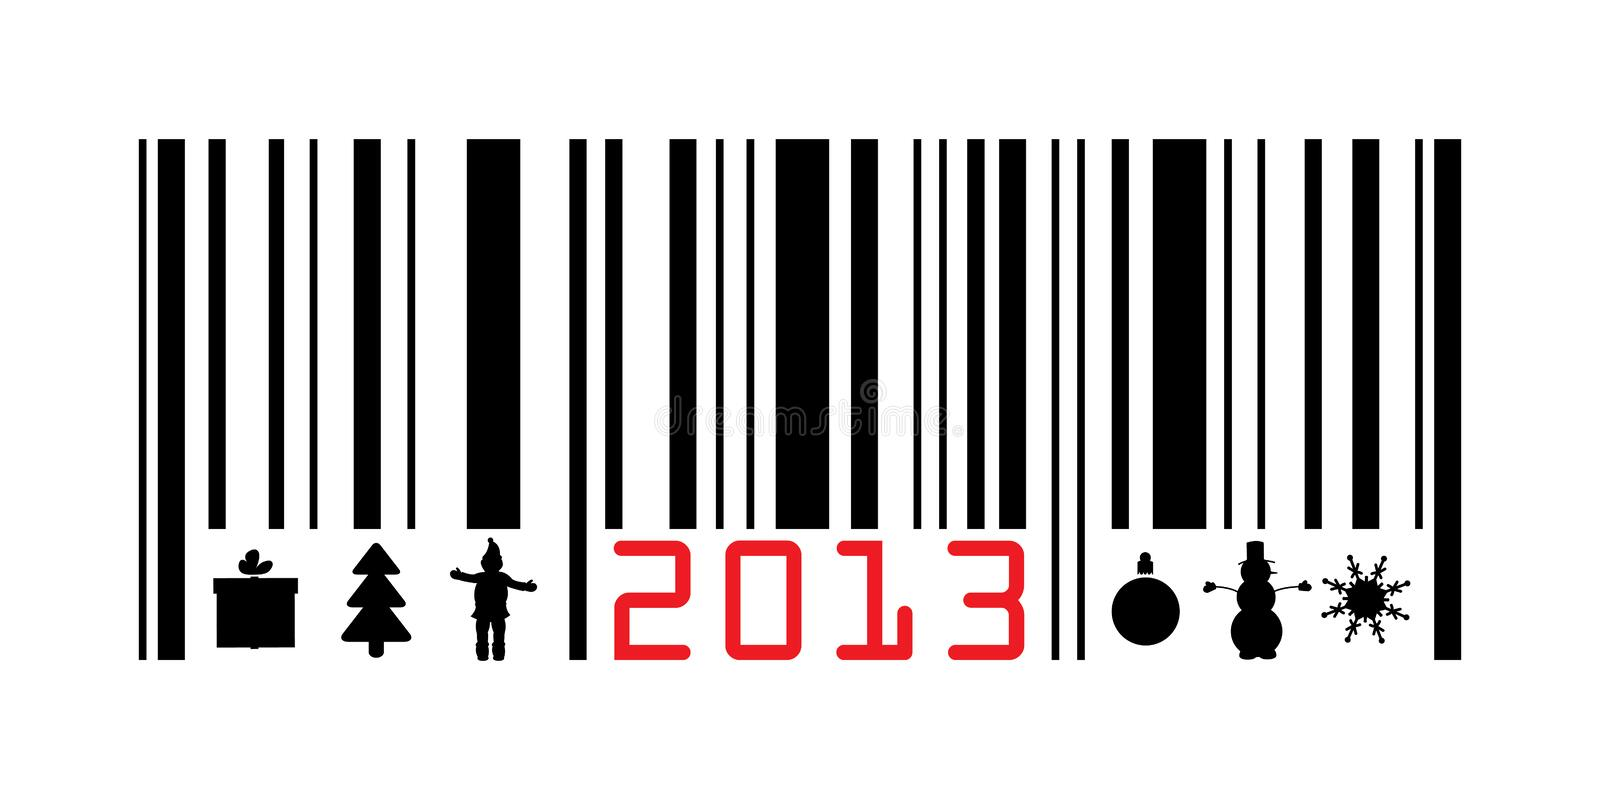 Greeting with 2013 year barcode royalty free illustration